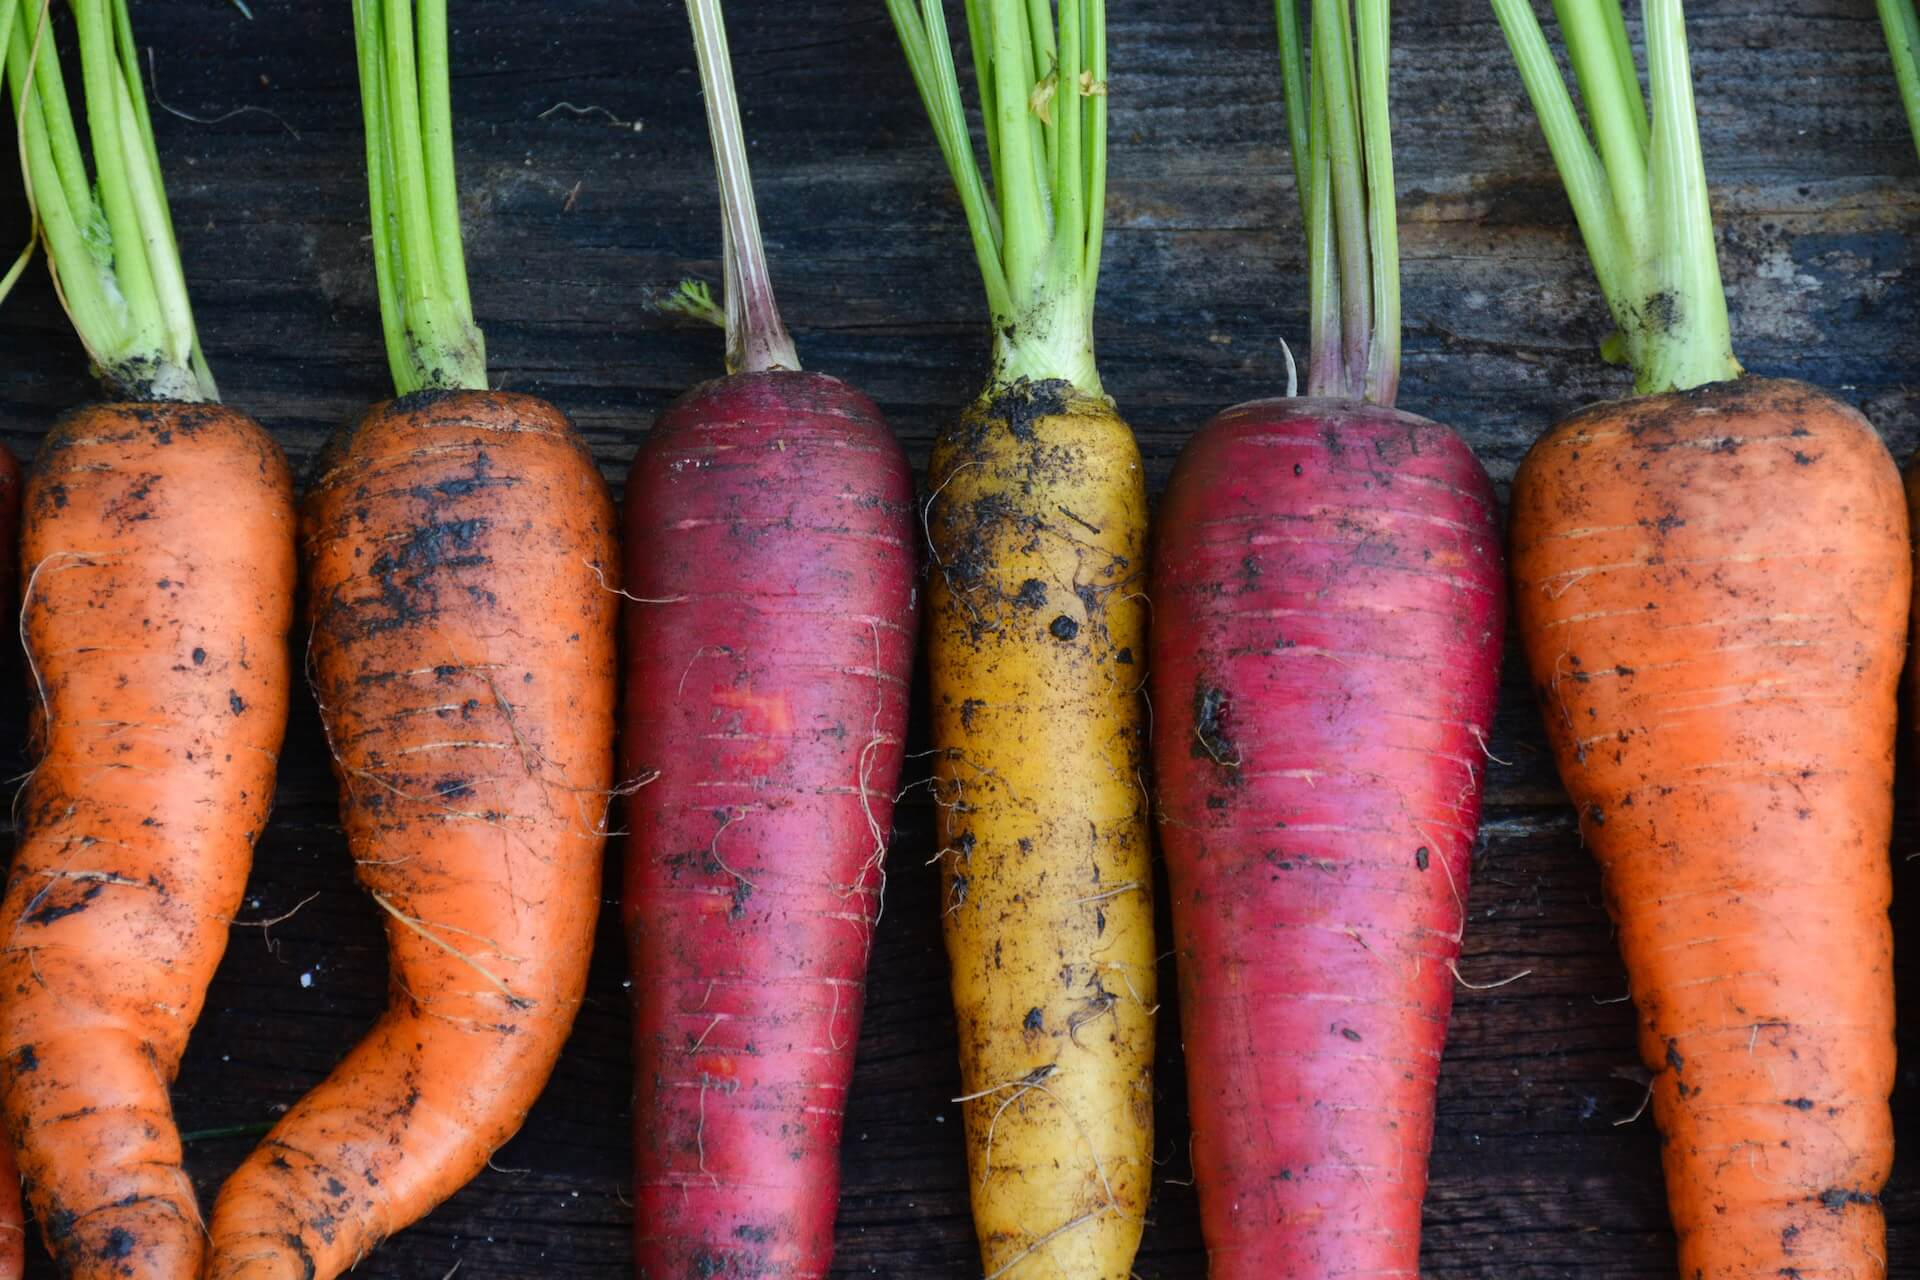 Freshly harvested organic rainbow carrots, orange, yellow, and purple